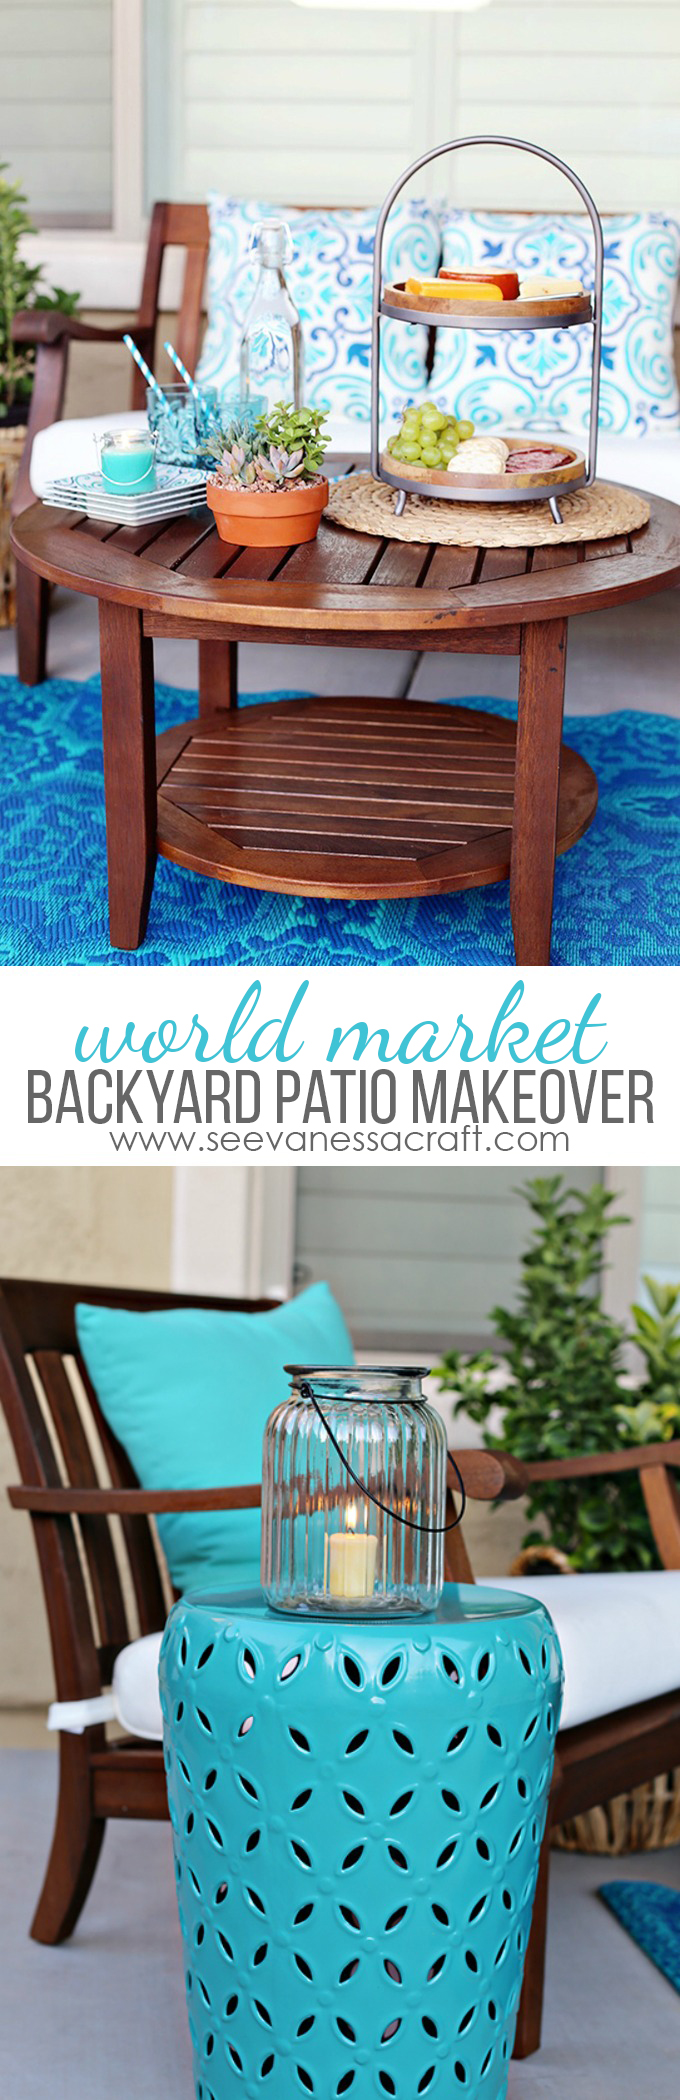 Exceptional World Market Backyard Patio Makeover